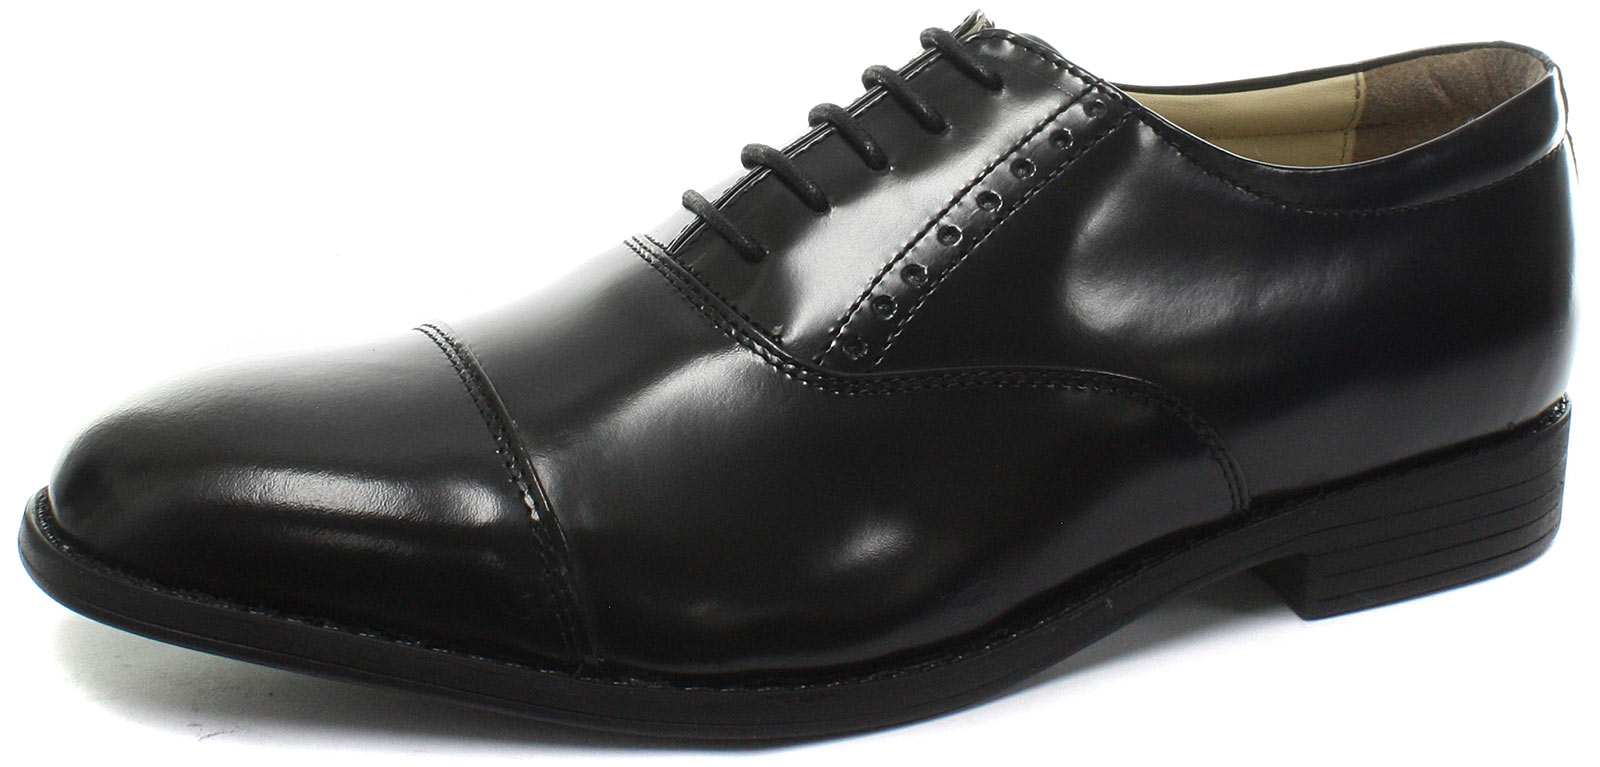 New TredFlex Hi-Shine Toe Cap Oxford Black Mens Lace Up Shoes ALL SIZES